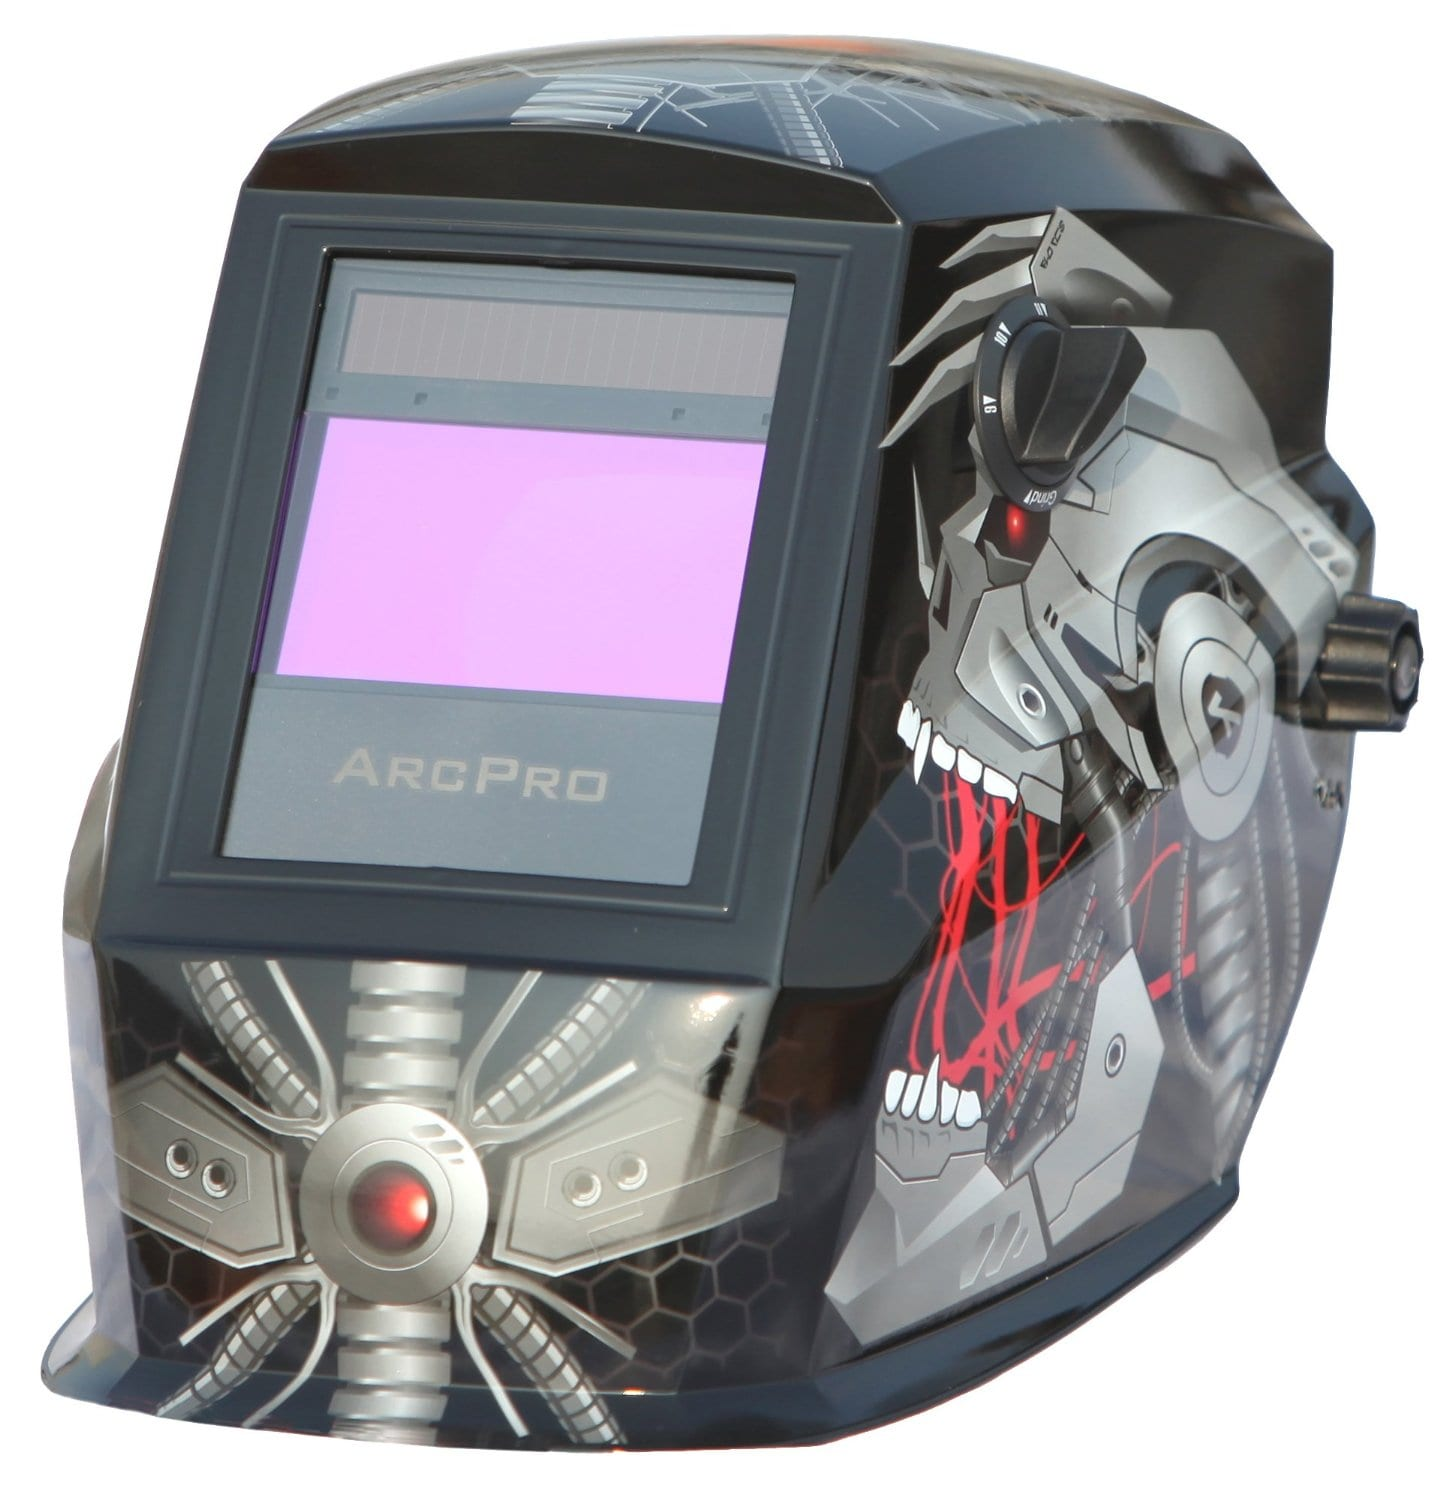 Arcpro 20704 auto darkening solar powered welding helmet with grinding review